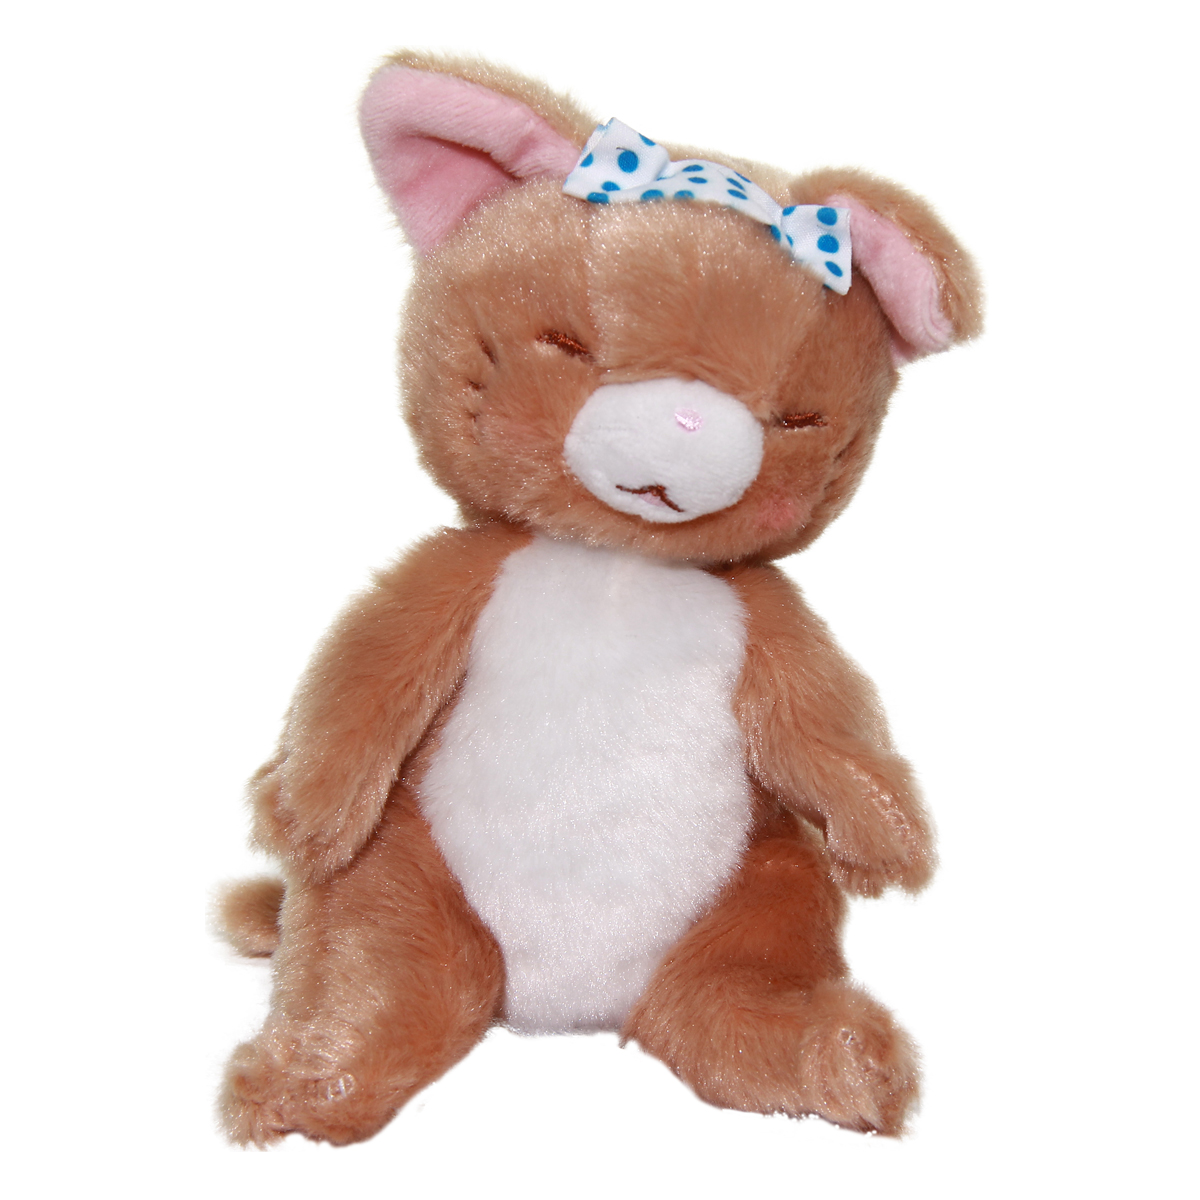 Cat Plush Doll, Hot Springs Collection, Stuffed Animal Toy, Light Brown, 6 Inches